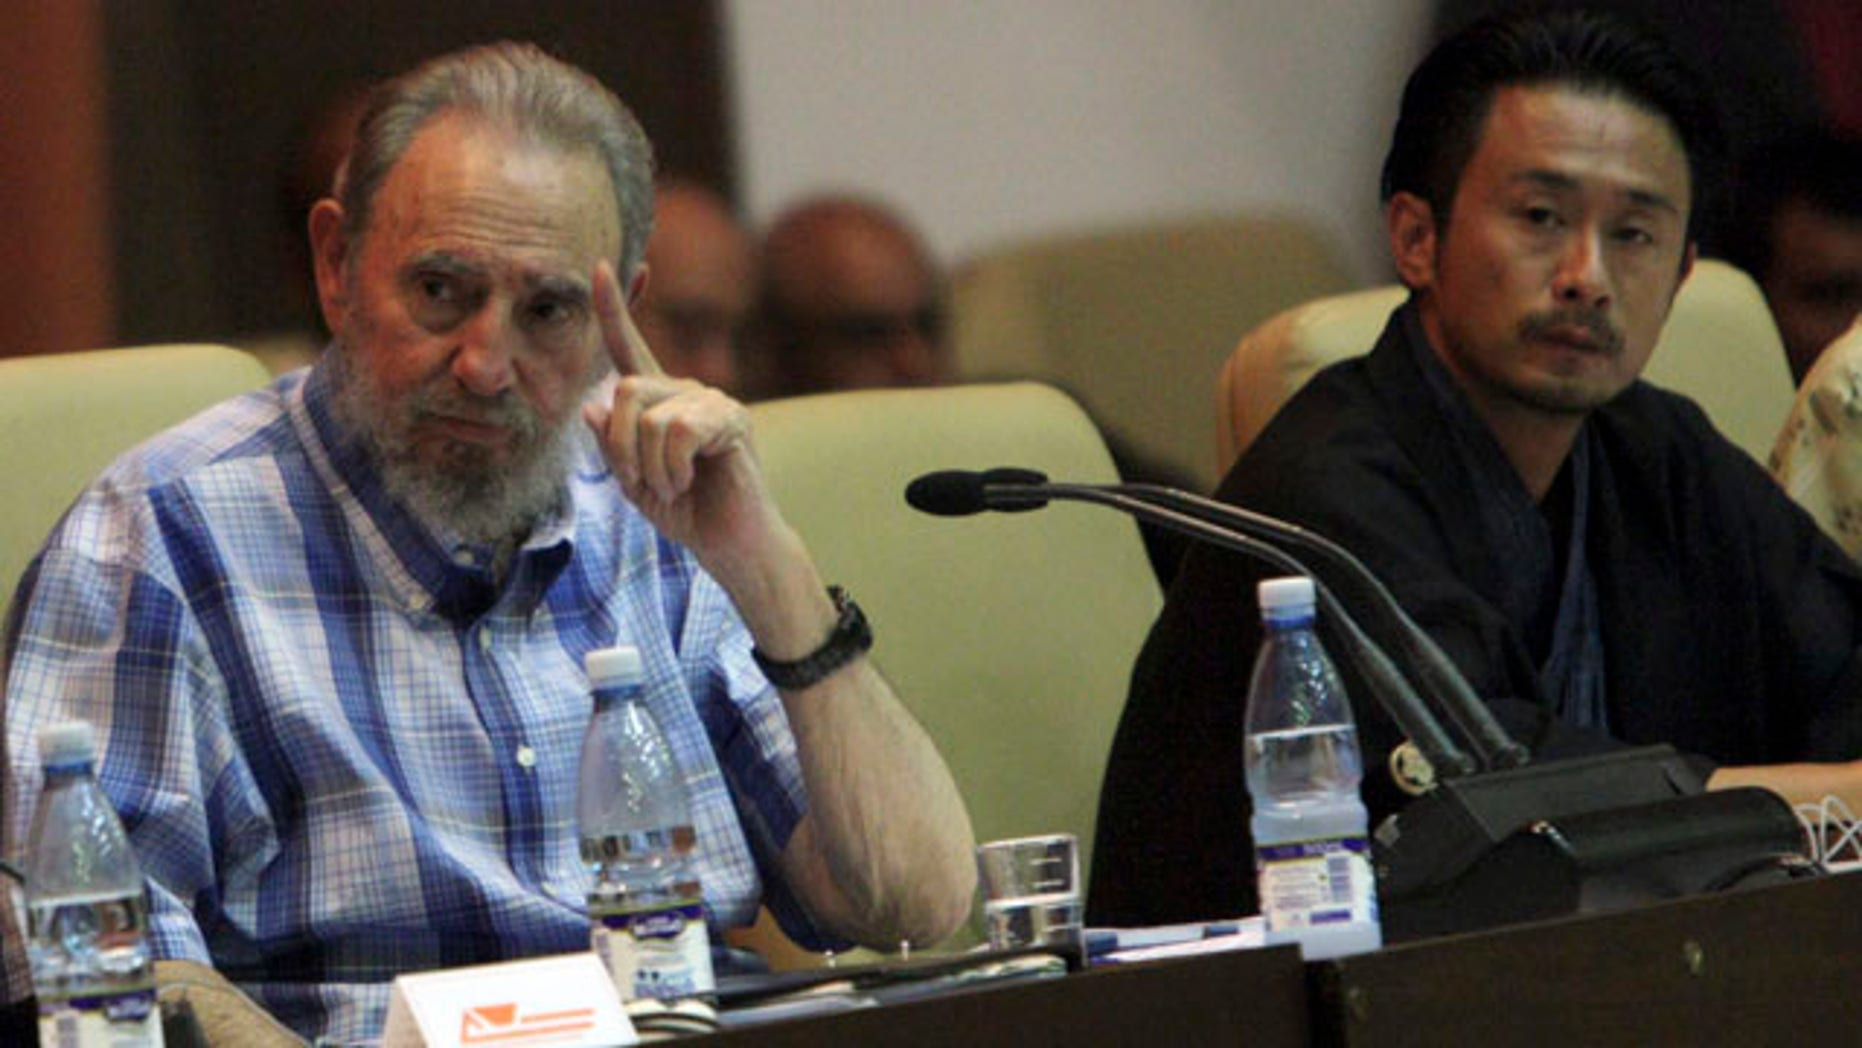 Sept. 21: Cuba's former President Fidel Castro, left, attends a meeting with members of the Peace Boat organization in Havana, Cuba.